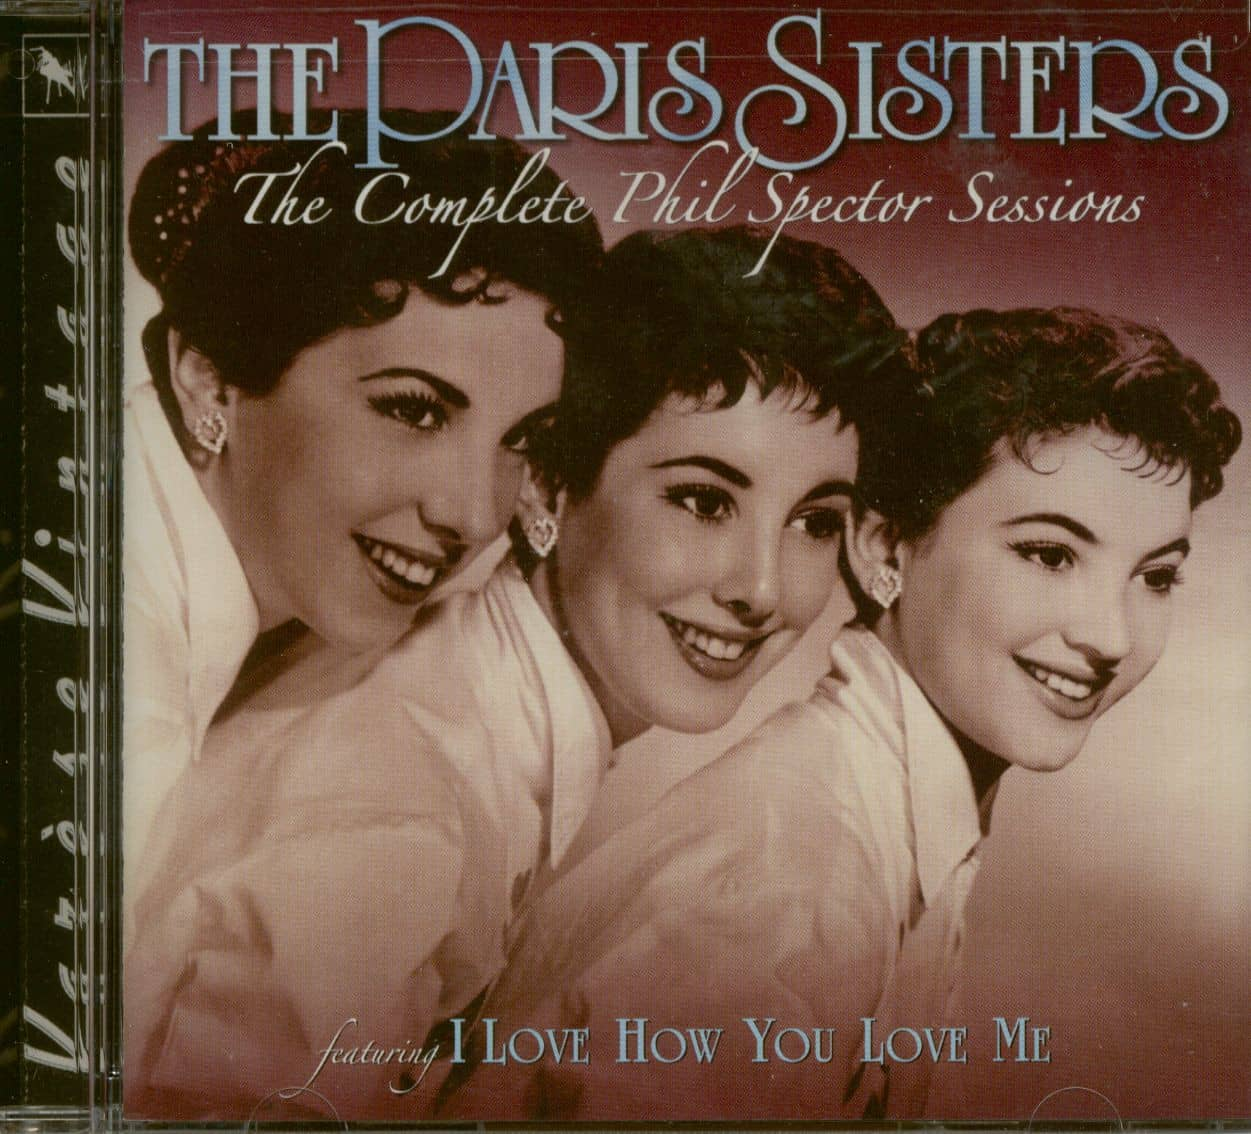 The Paris Sisters - The Complete Phil Spector Sessions (CD)